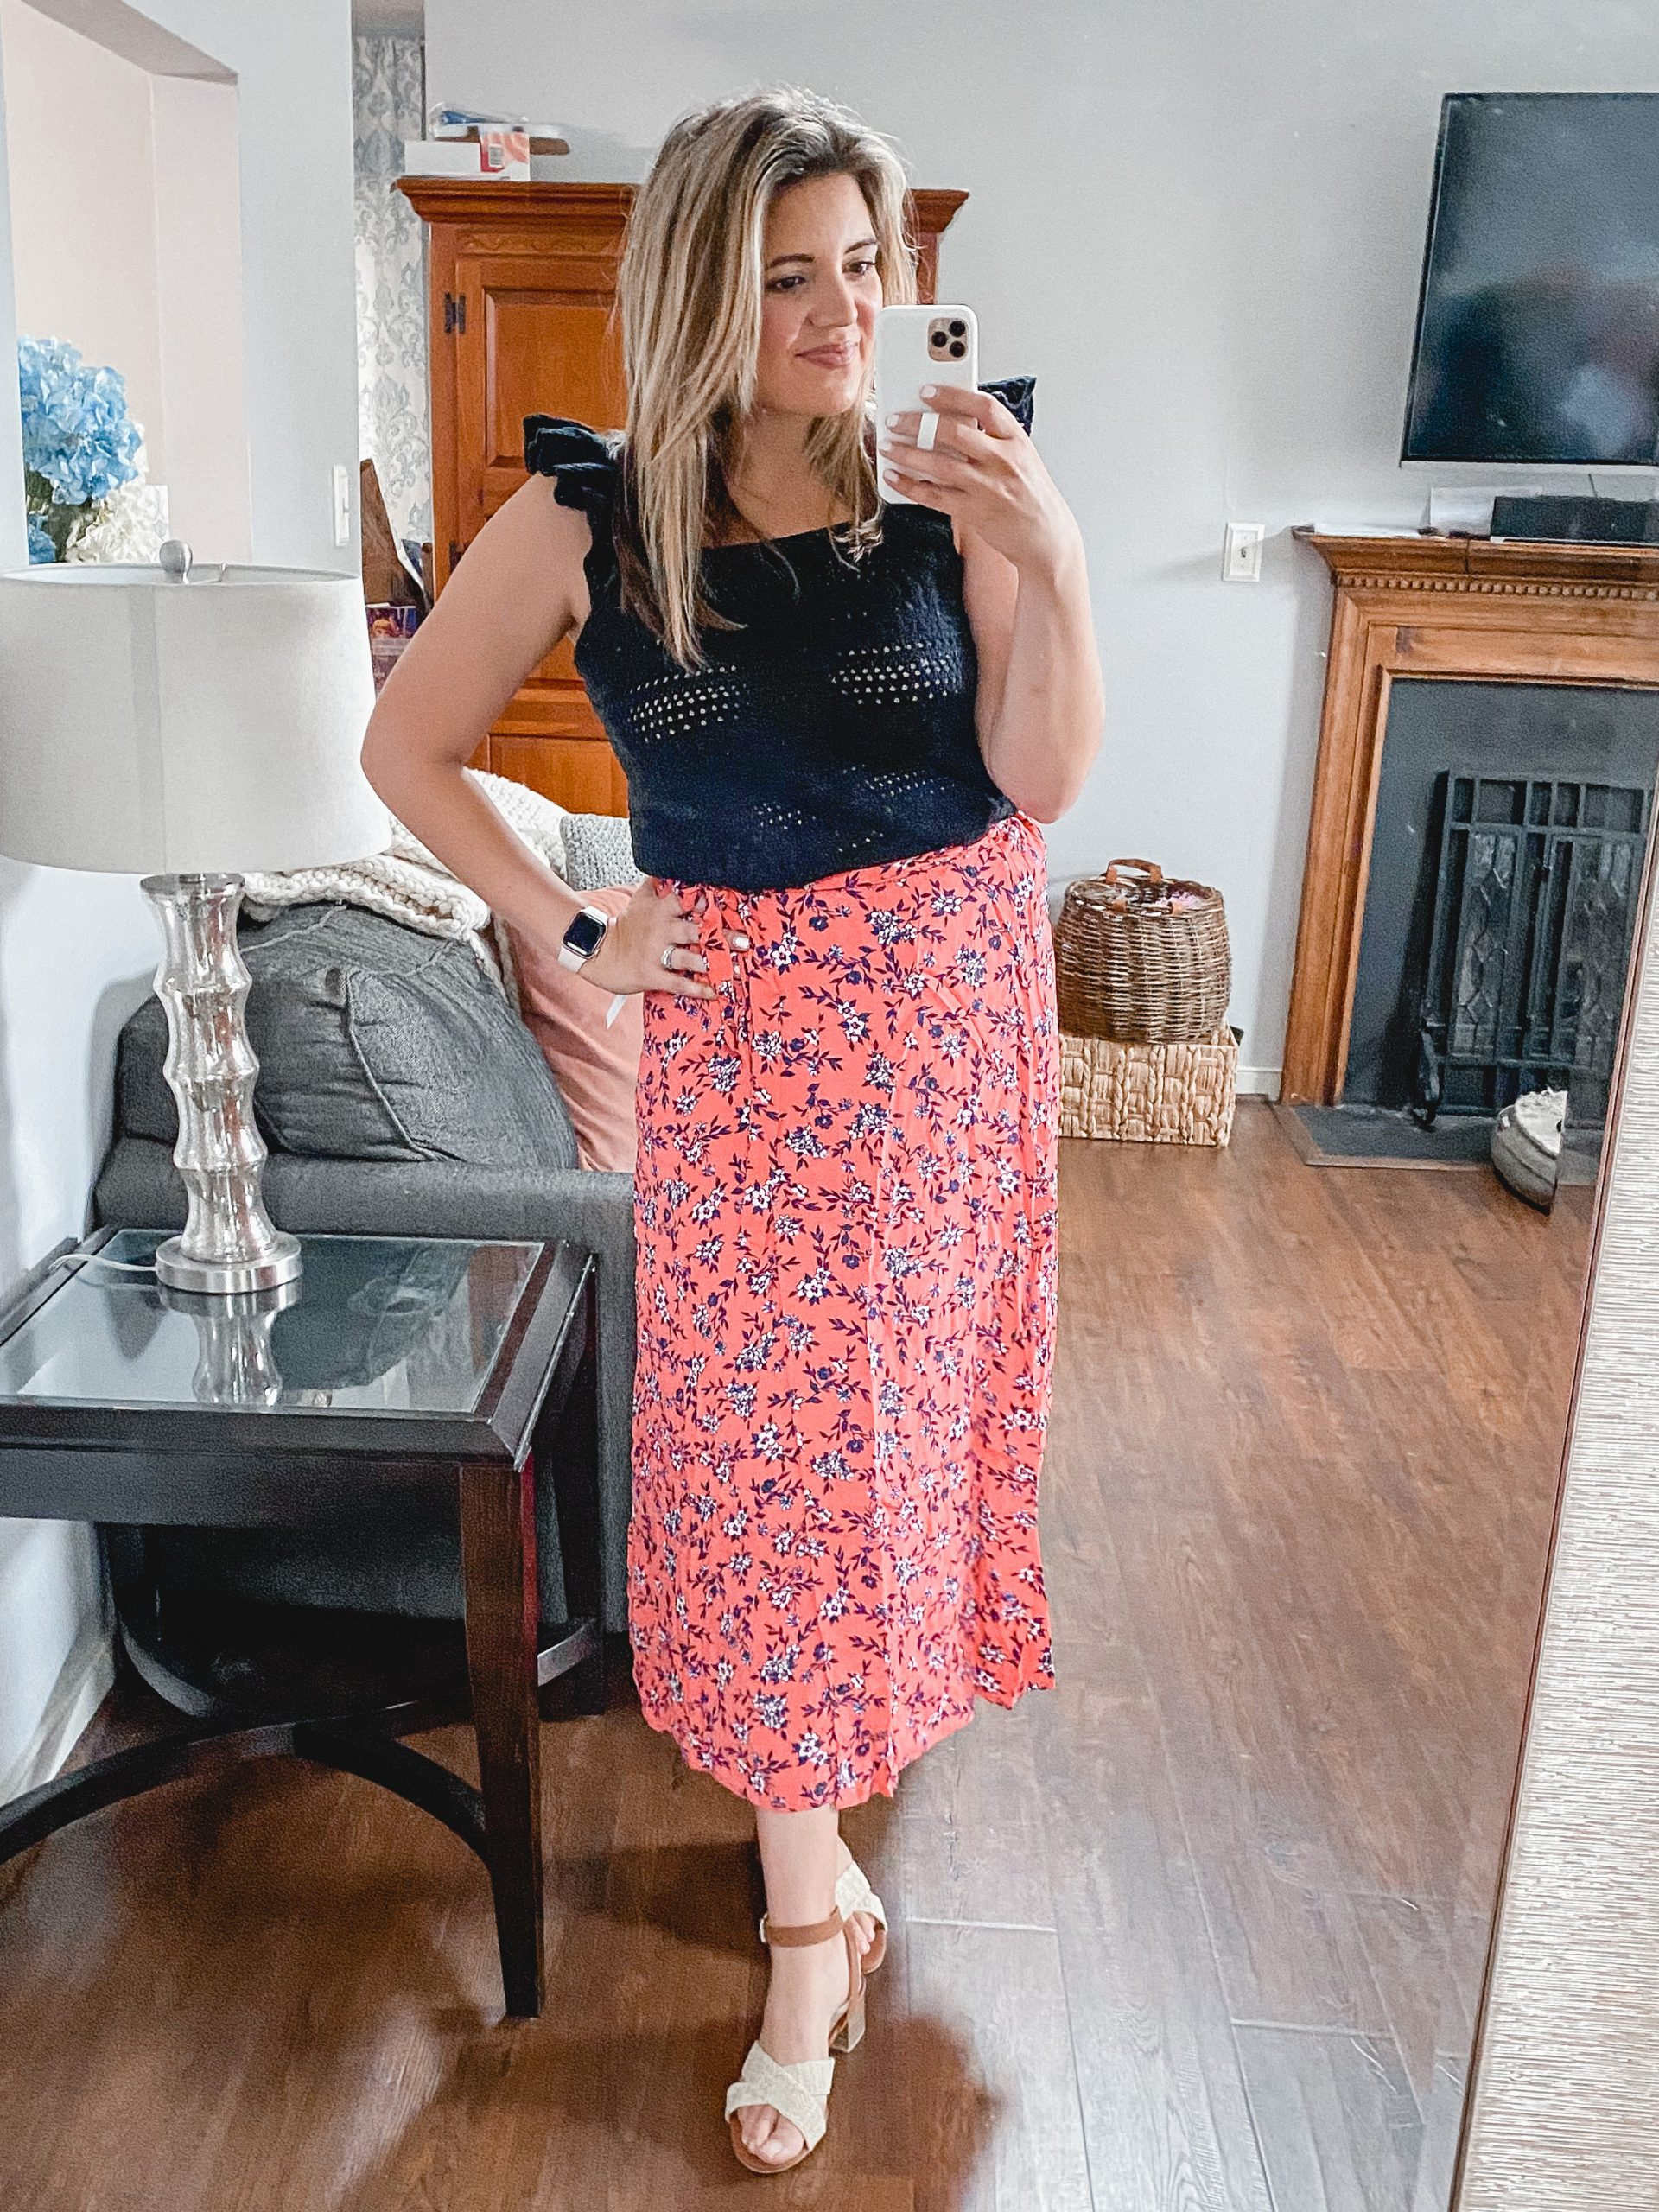 Virginia blogger, Lauren Dix, shares 10 new Walmart fashion finds for spring and summer in her latest Walmart try on!